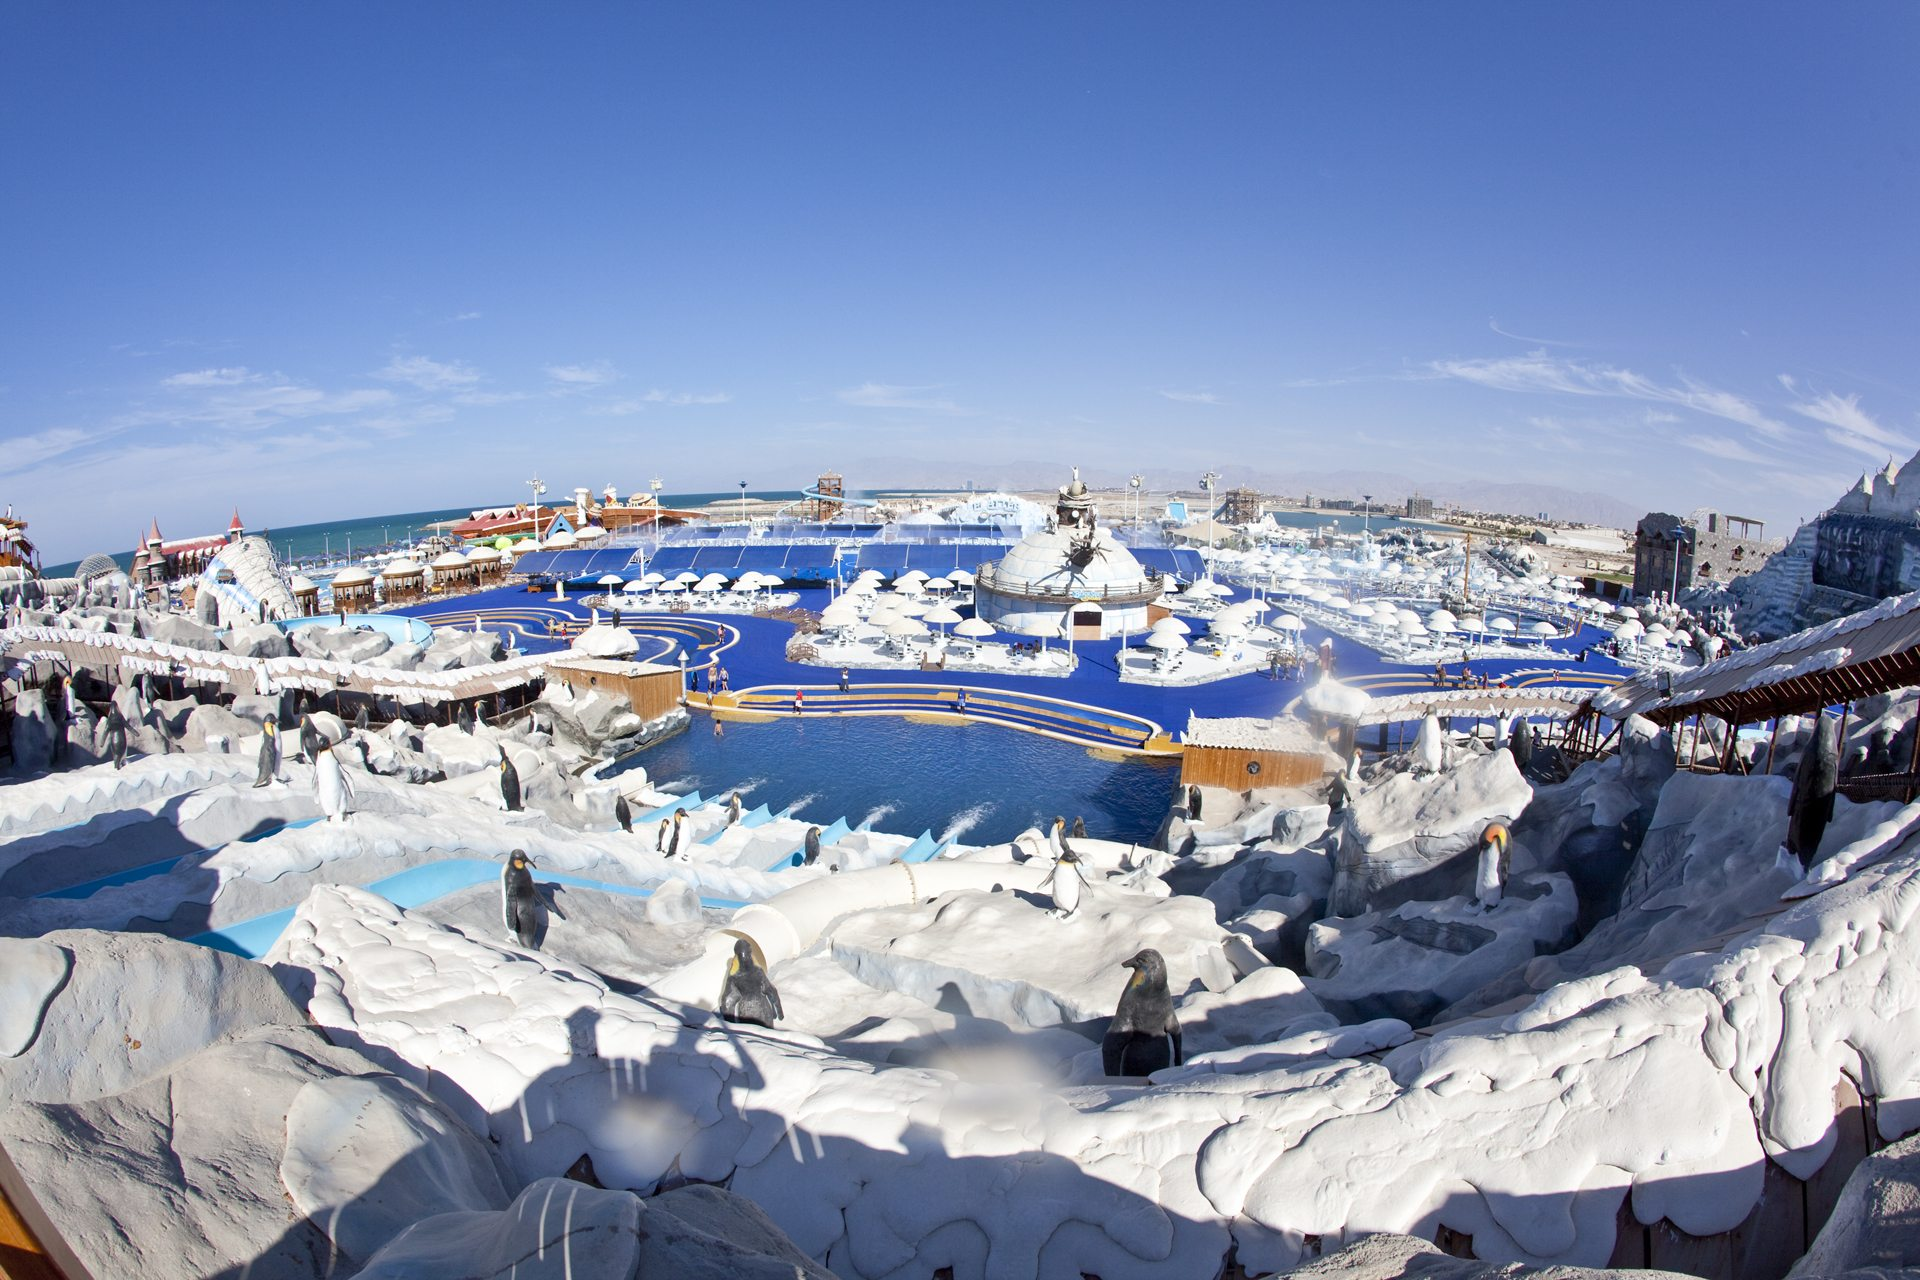 iceland water park offers